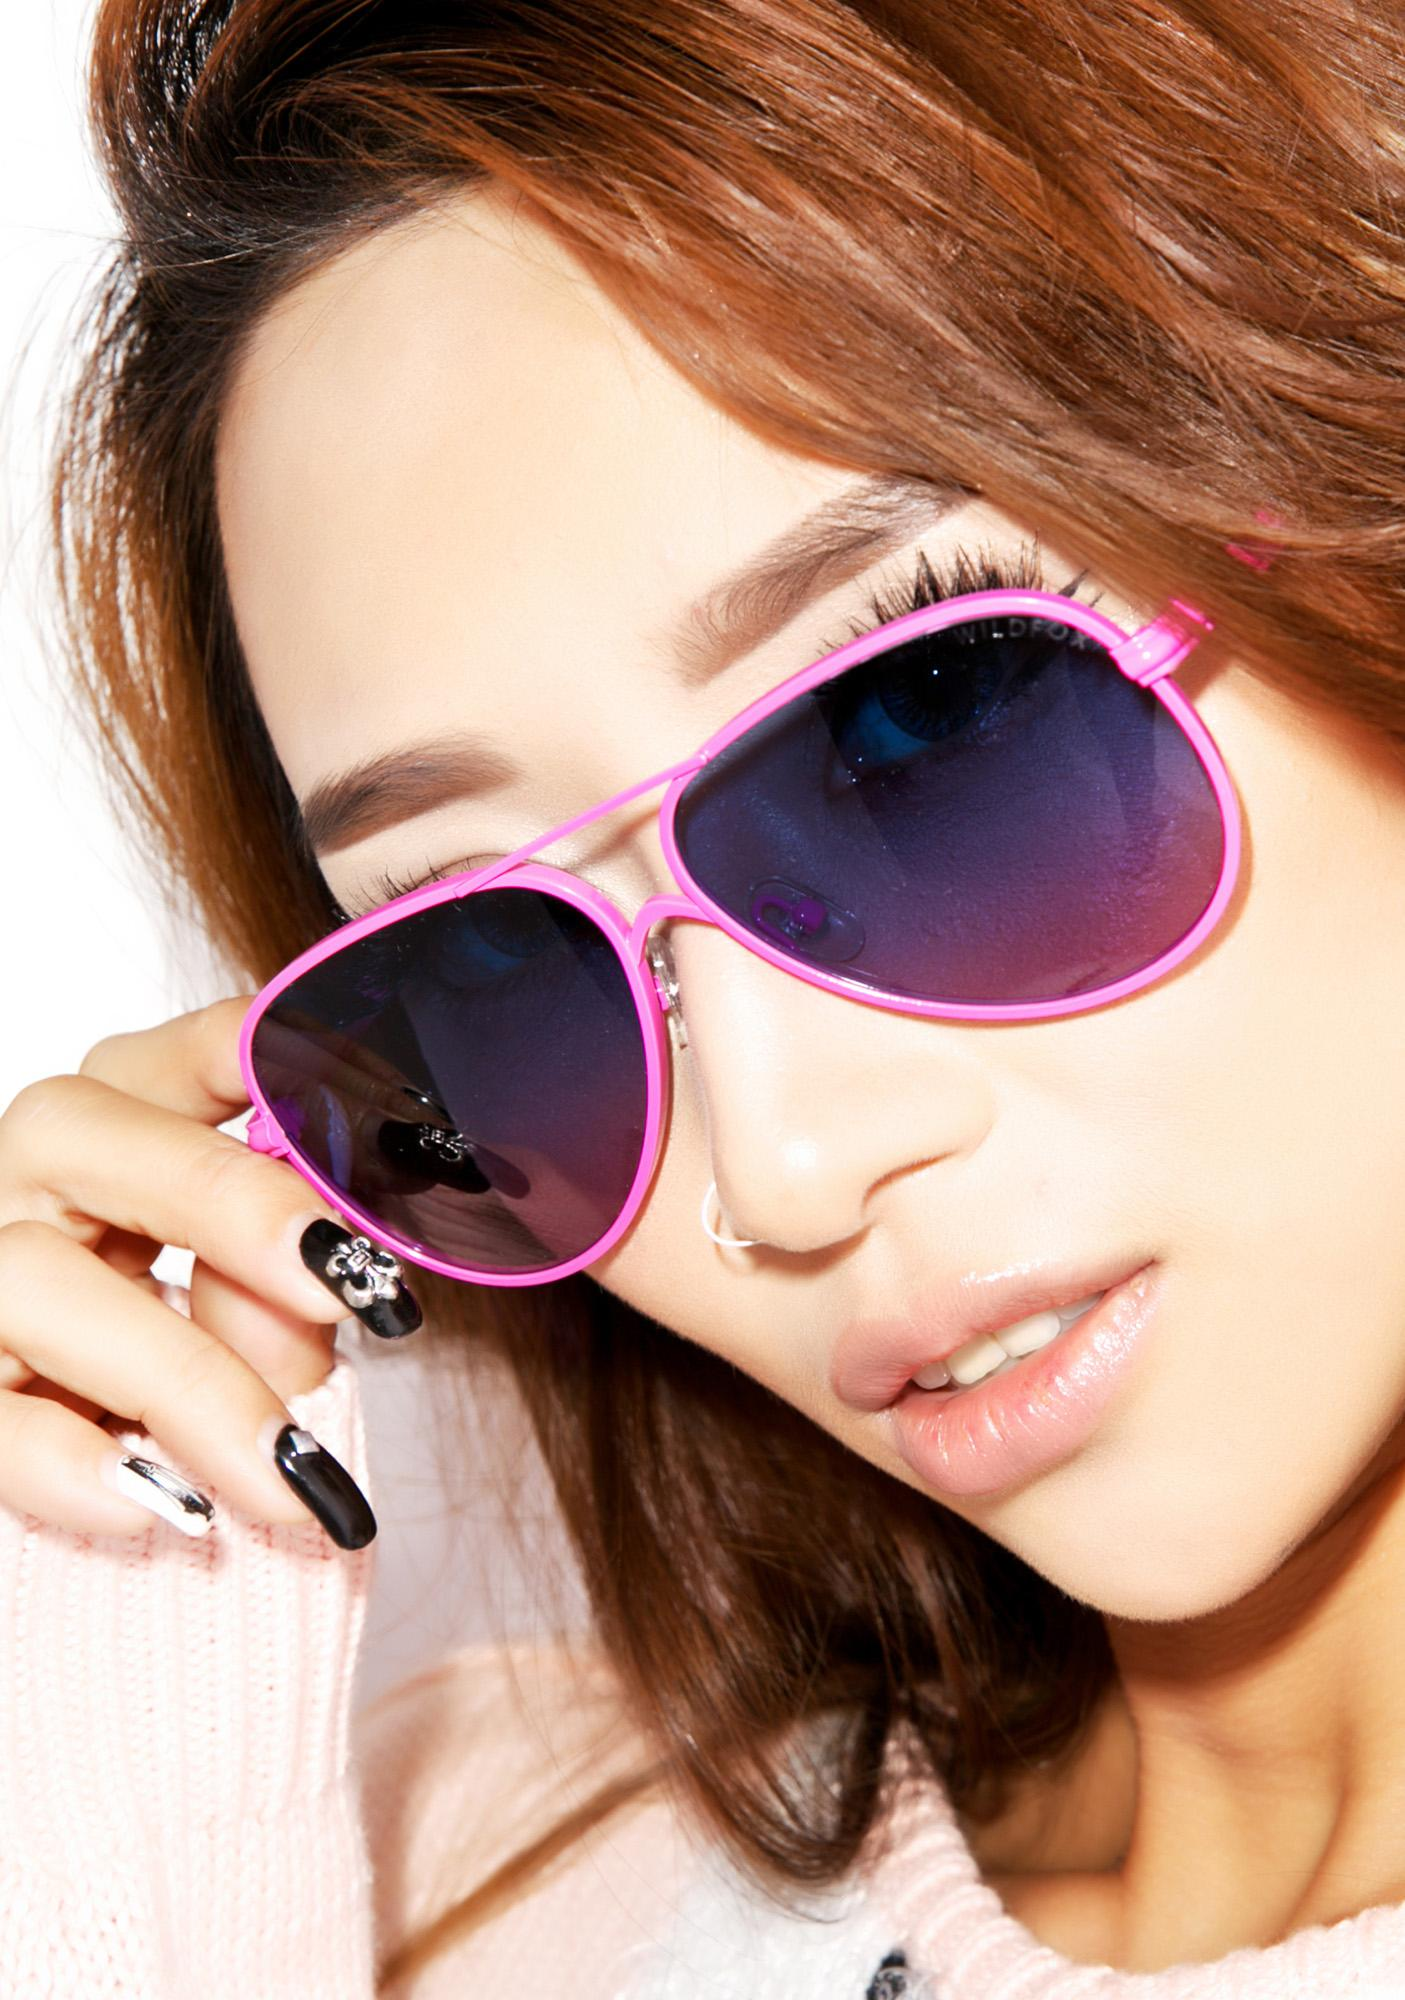 Wildfox Couture Airfox 2 Sunglasses